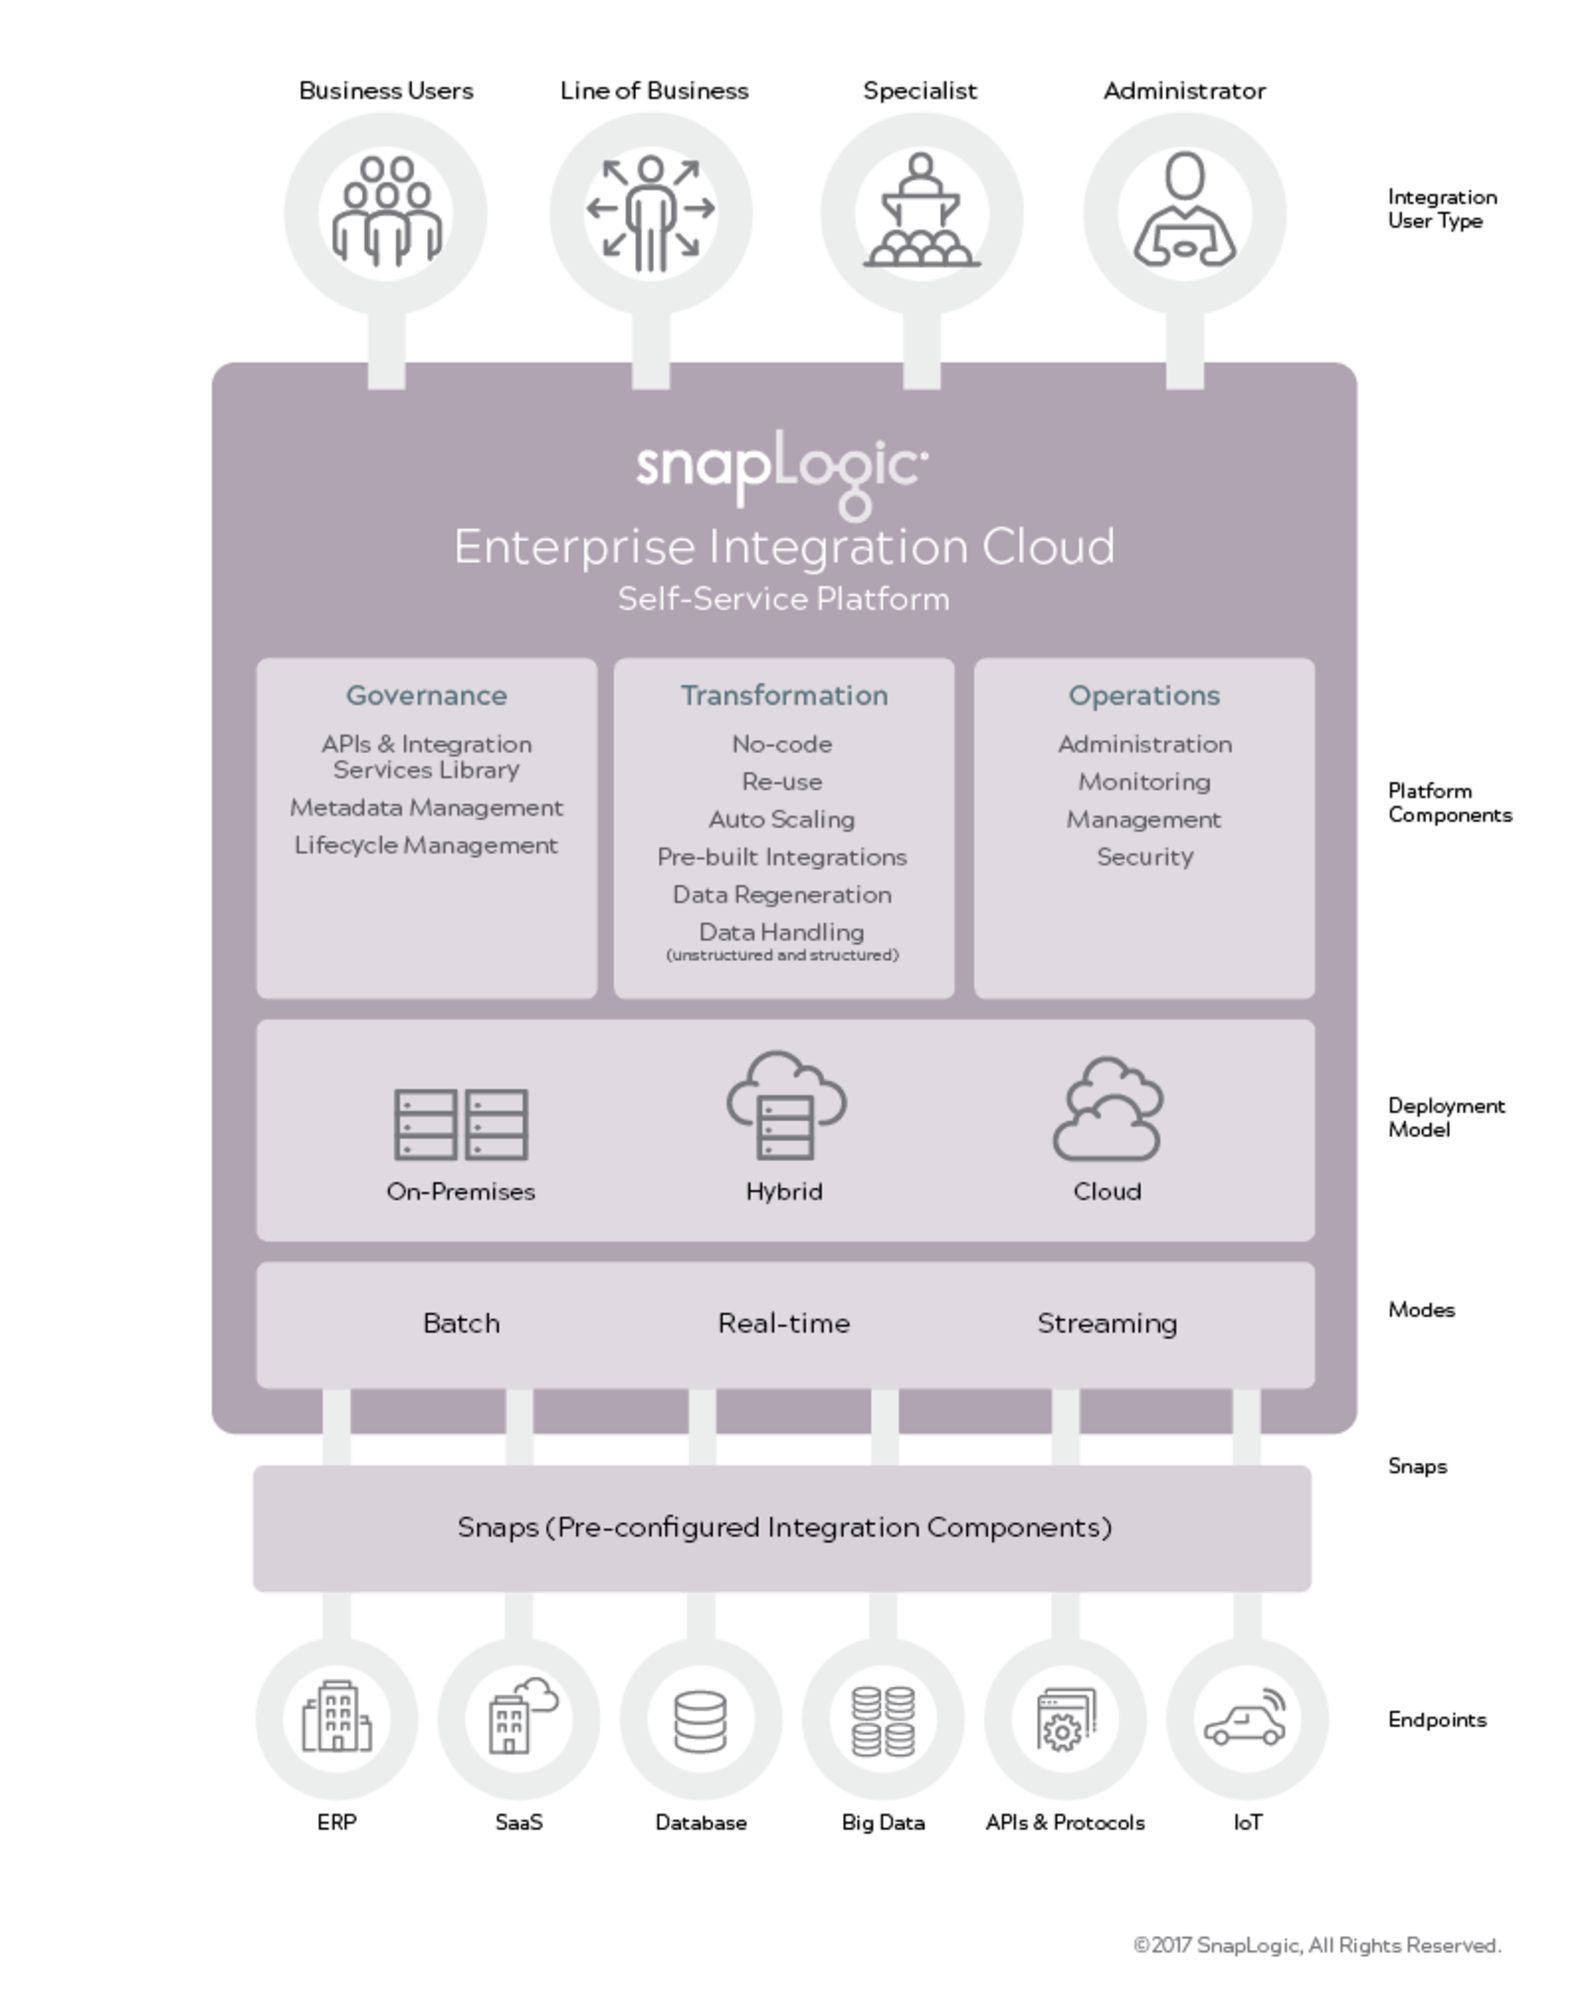 The Enterprise Integration Cloud